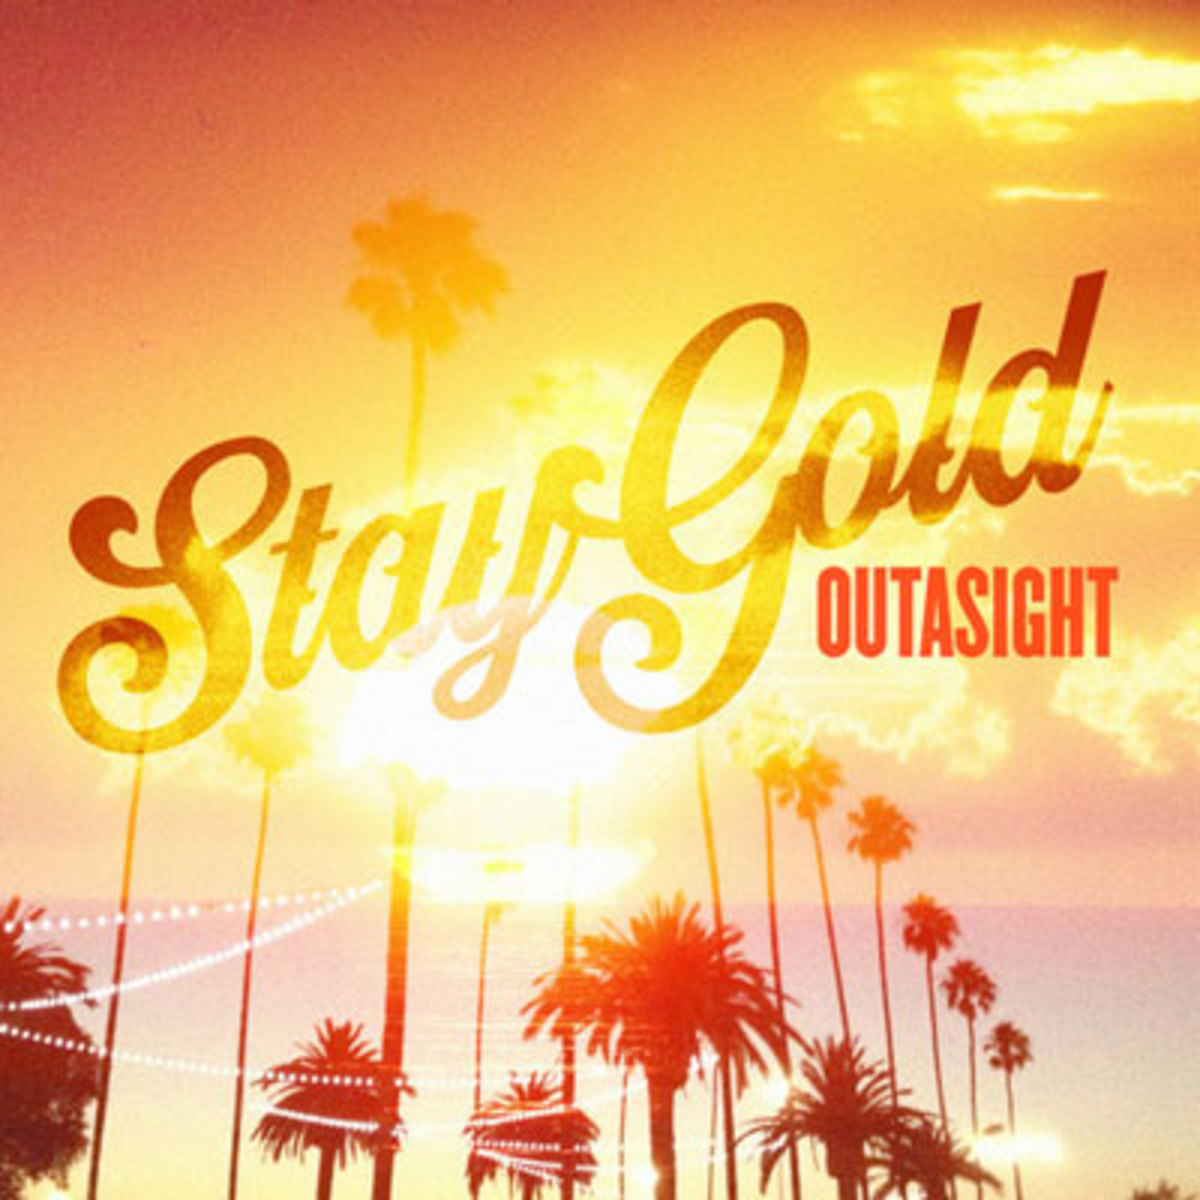 outasight-staygold.jpg